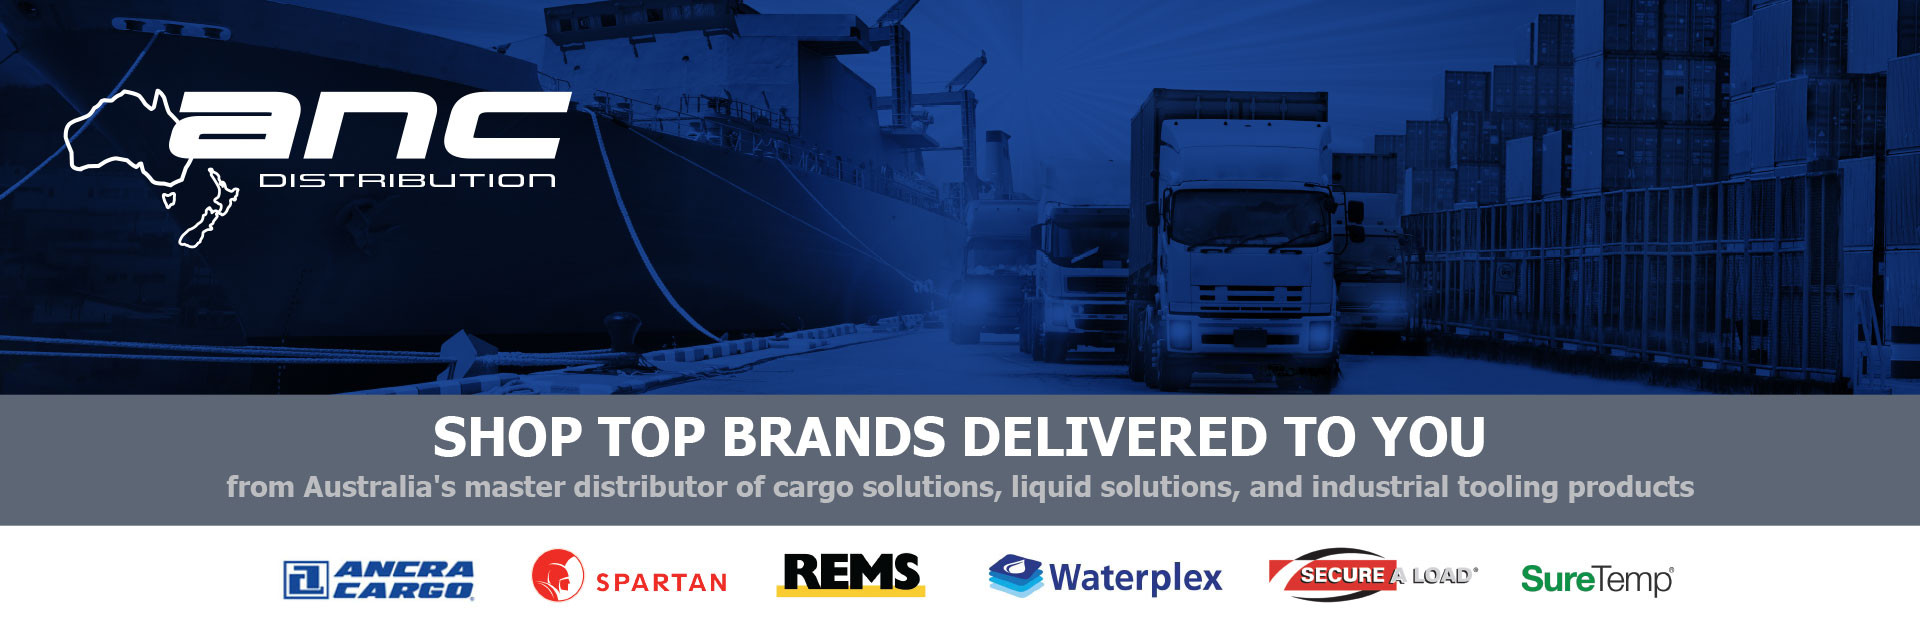 ANC Distribution Top Brands Delivered to You